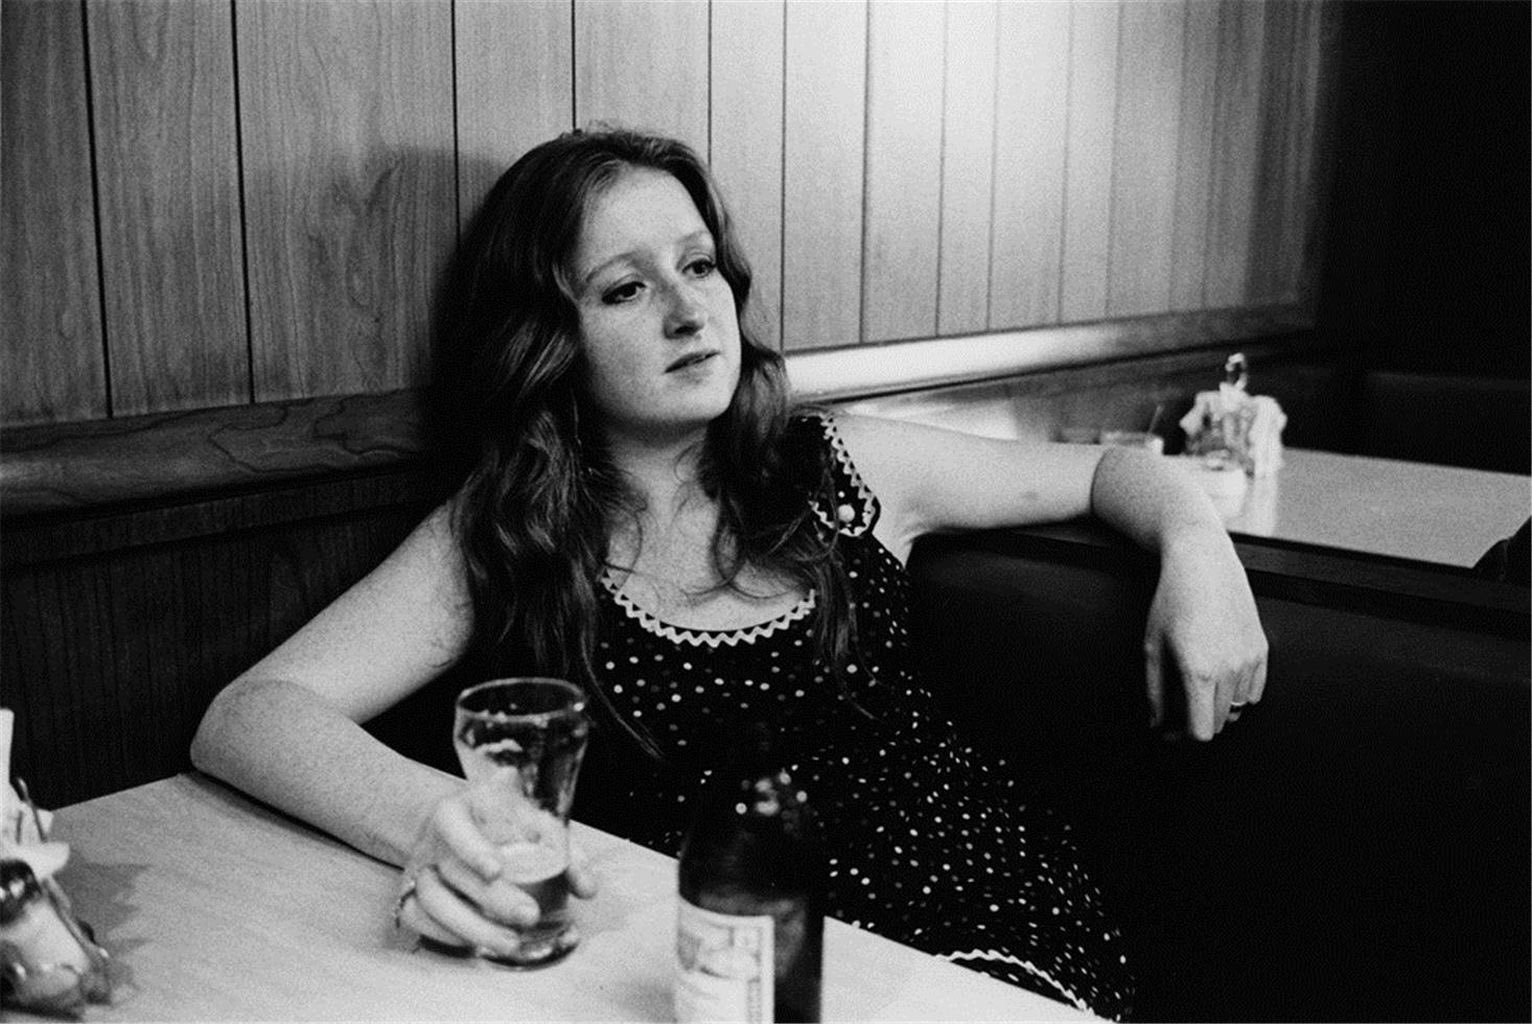 Happy Birthday to Bonnie Raitt who turns 70 today!  Photo by David Gahr back in the day. 70